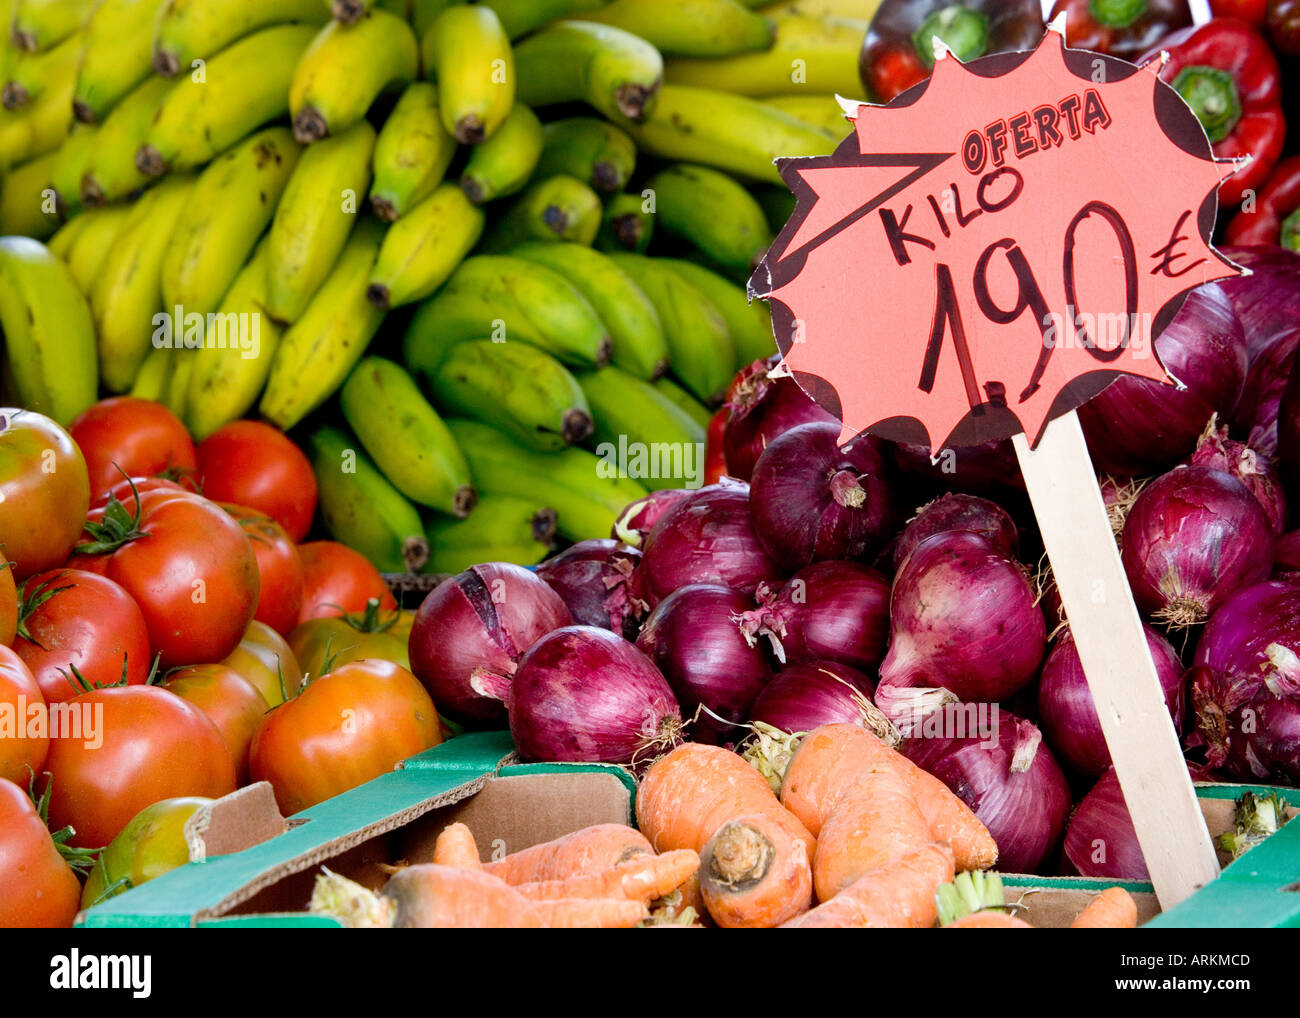 Close-up of Fruit and Vegetable stall in San Fernando Market, Gran Canaria - Stock Image